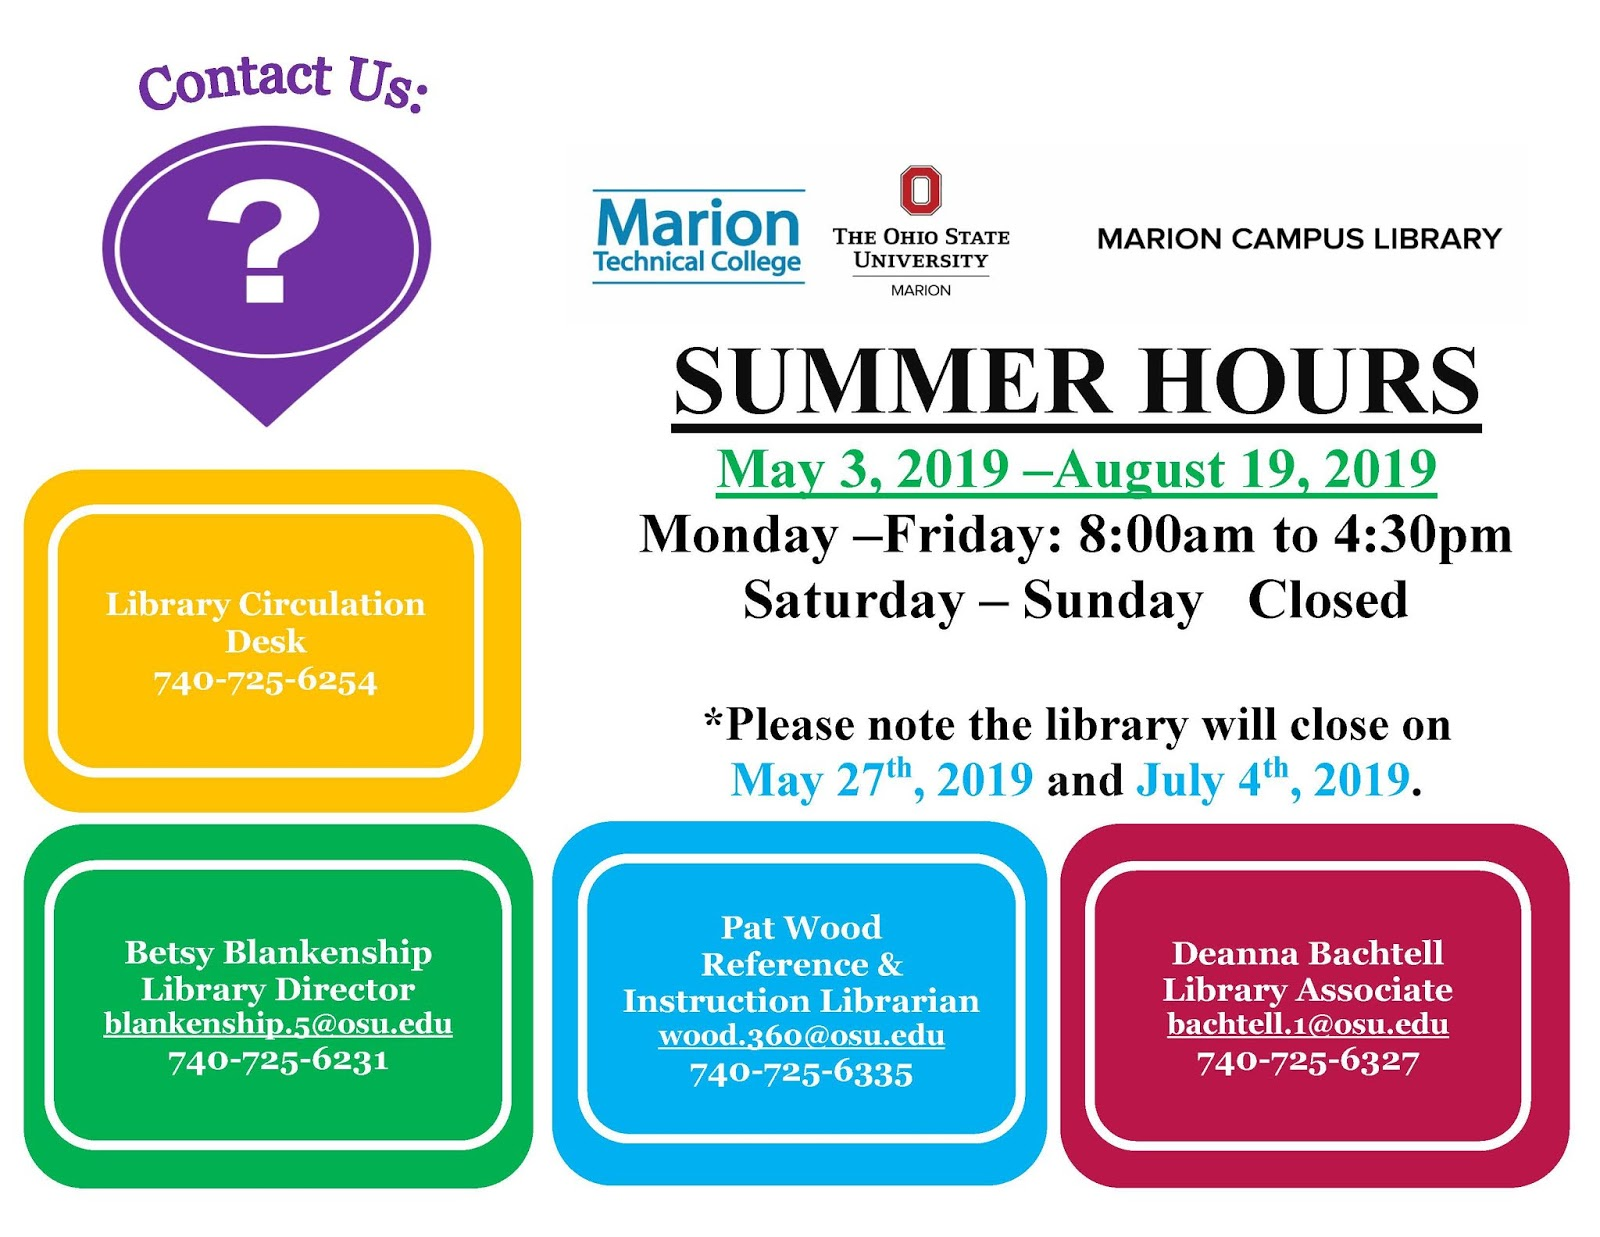 Marion Campus Library: April 2019